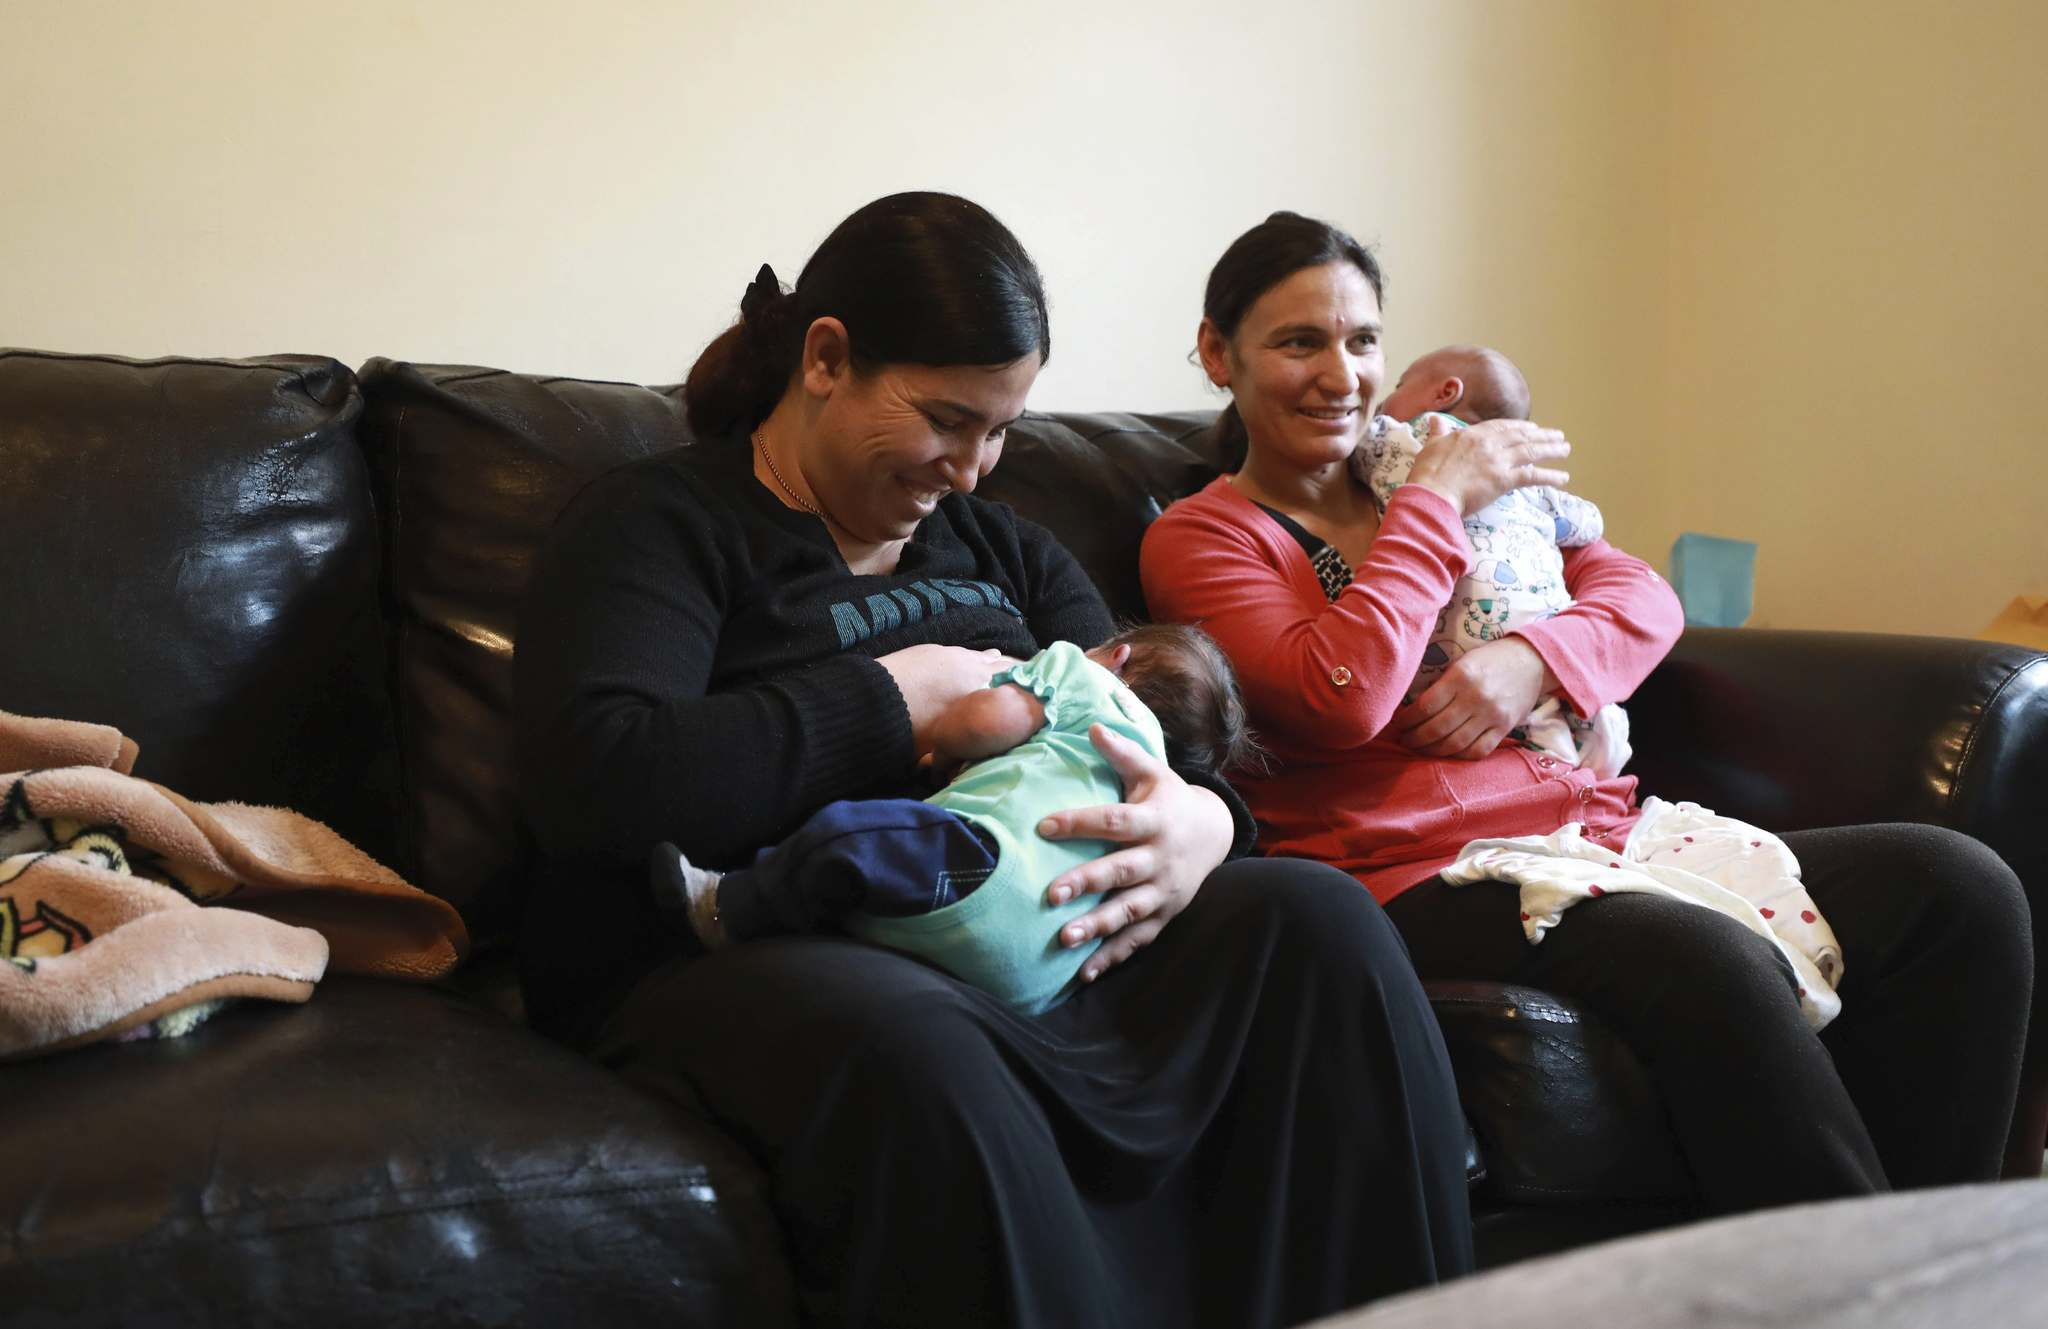 Basima Grnos (left) with her baby girl, Avin, 2 weeks. At right, Safiya Maroo with her son Sam who is 3 weeks old. (Ruth Bonneville / Winnipeg Free Press)